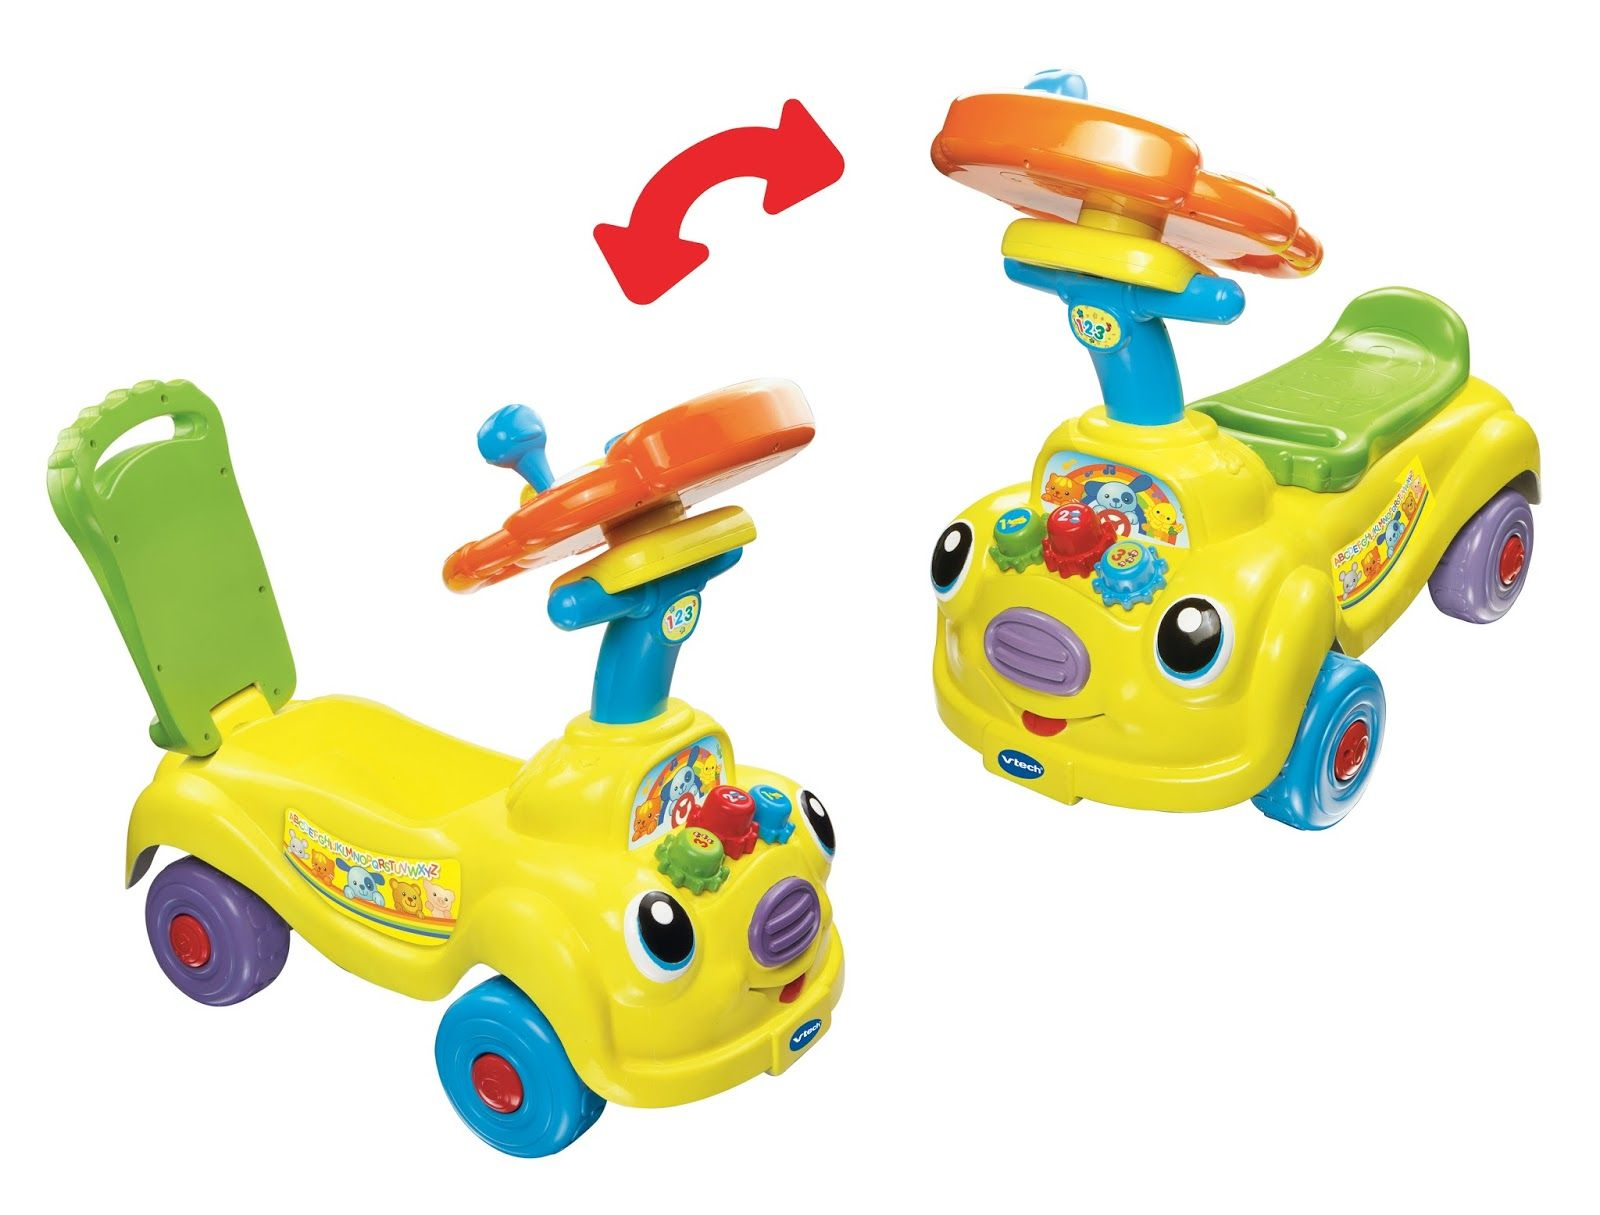 Holiday Gift Guide 4 VTech Toys We Love Toys for 1 year